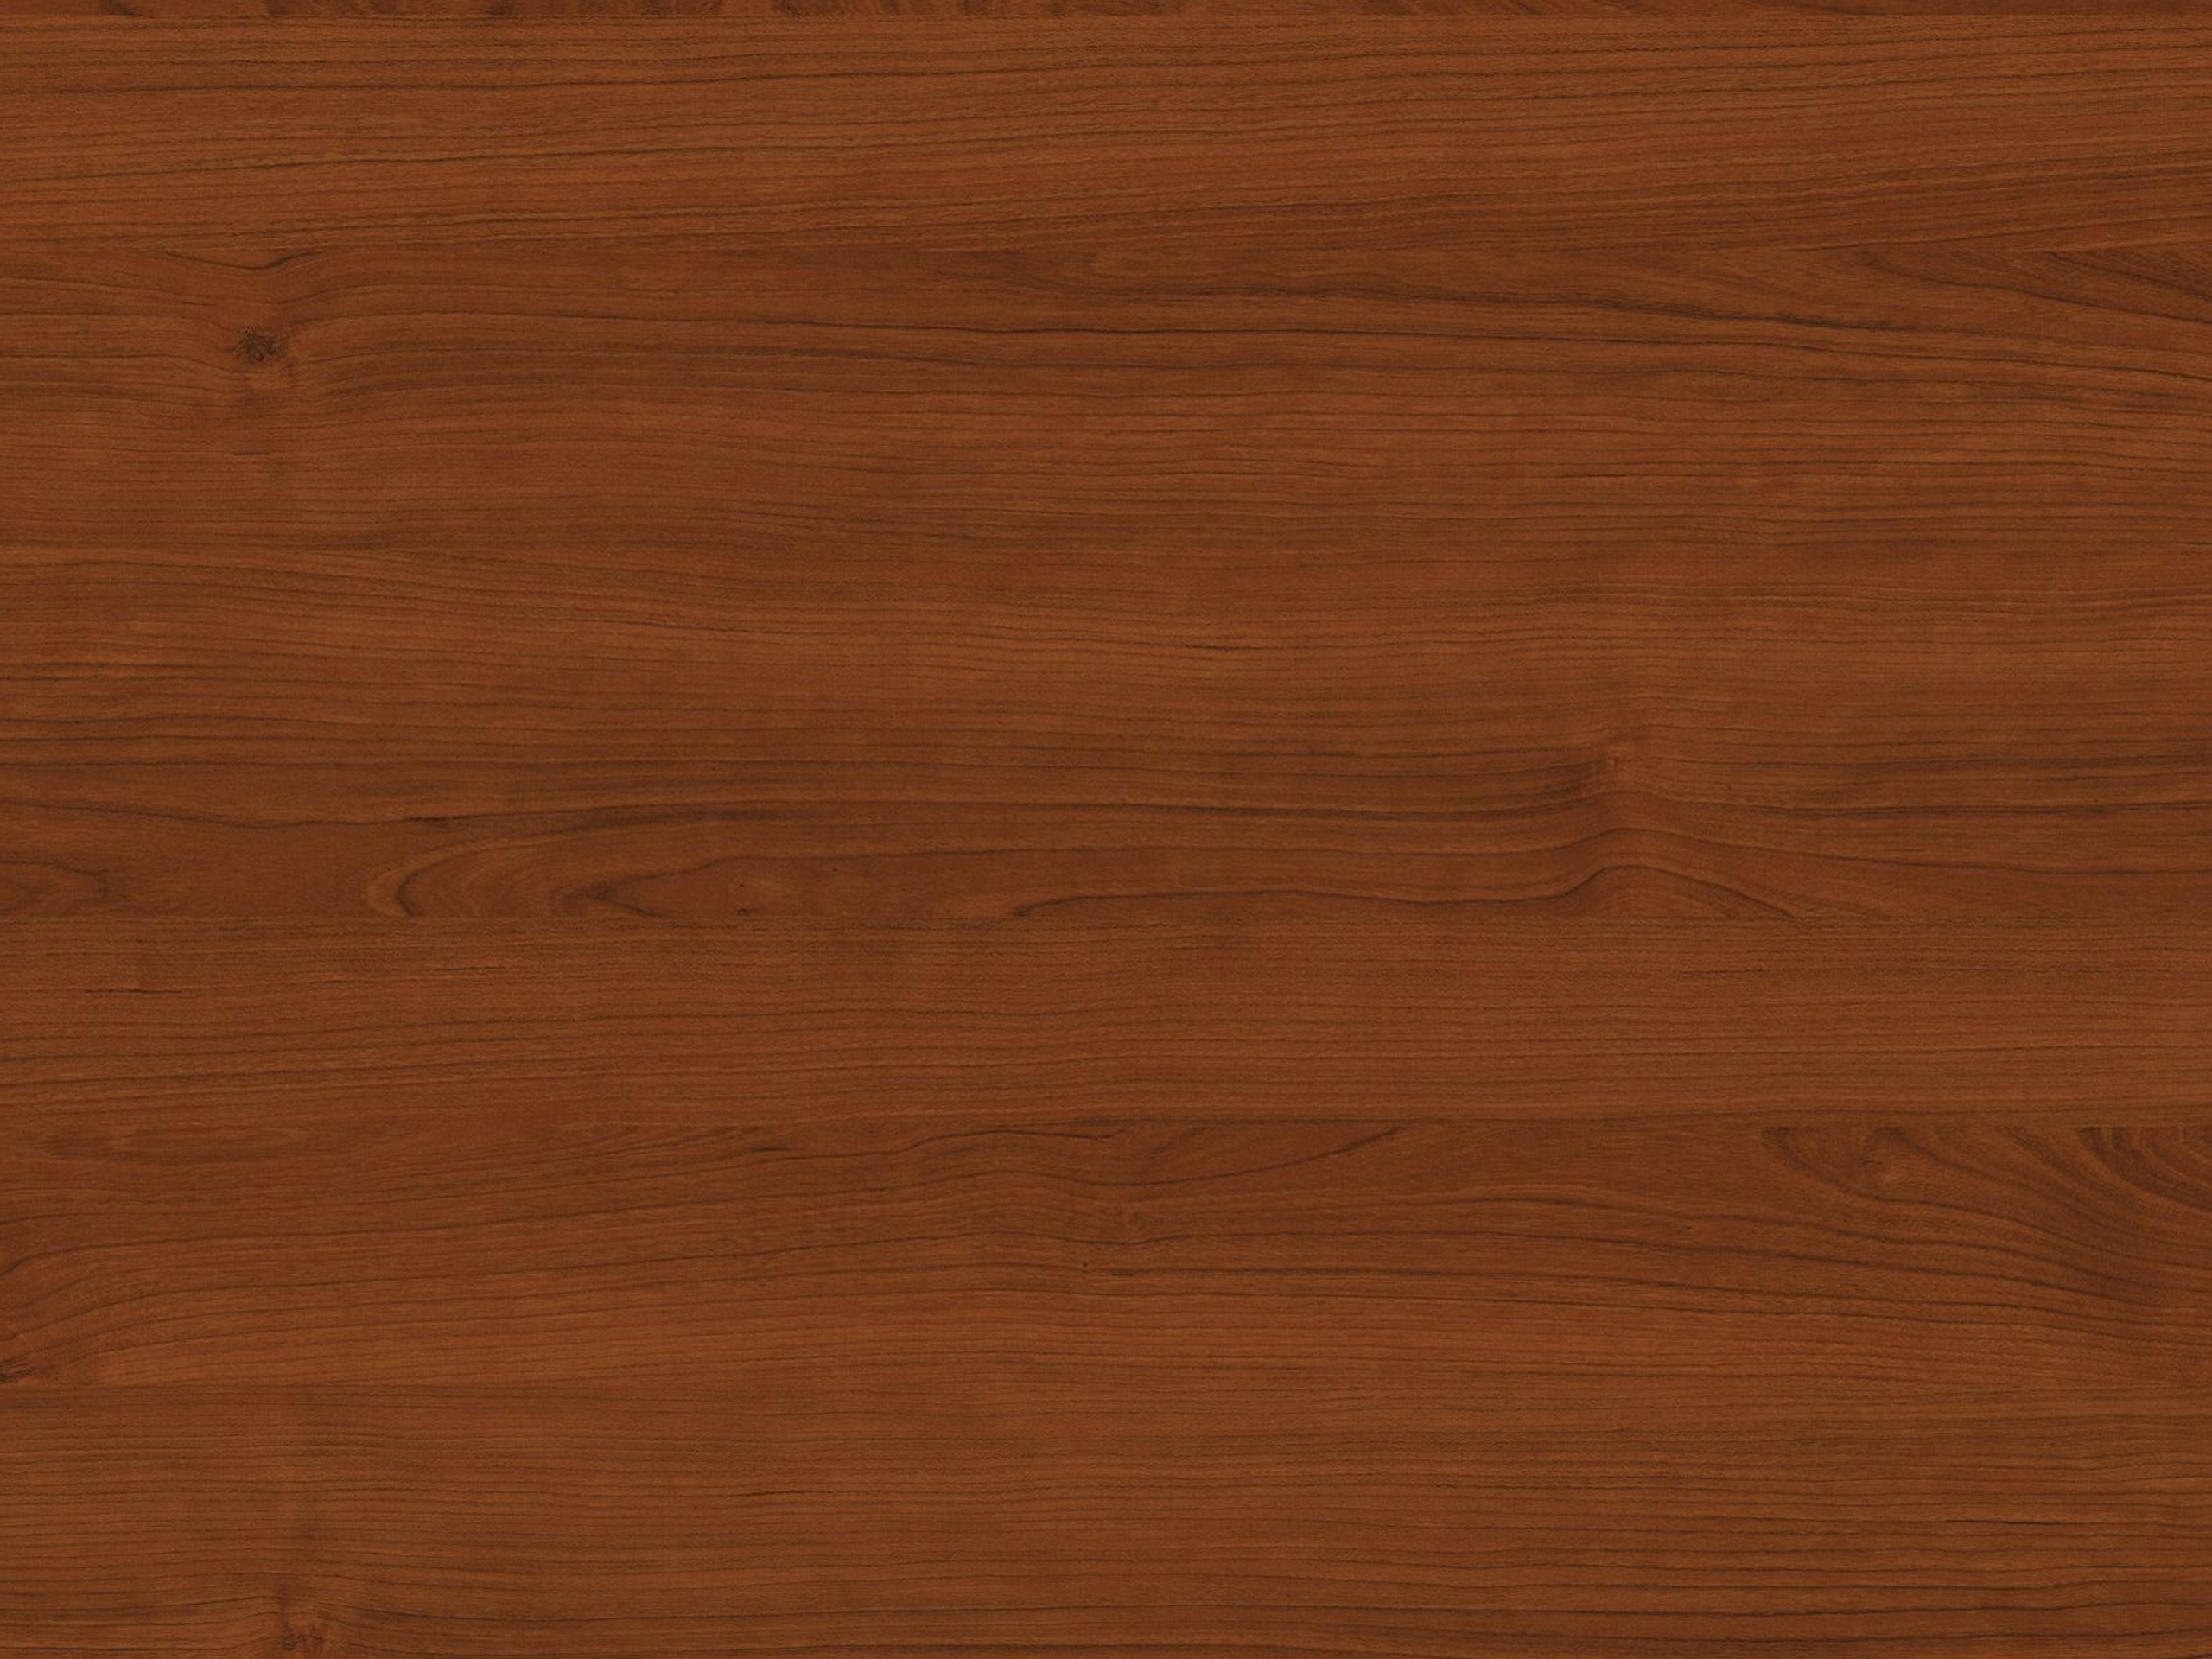 wood laminate wood laminate desktop